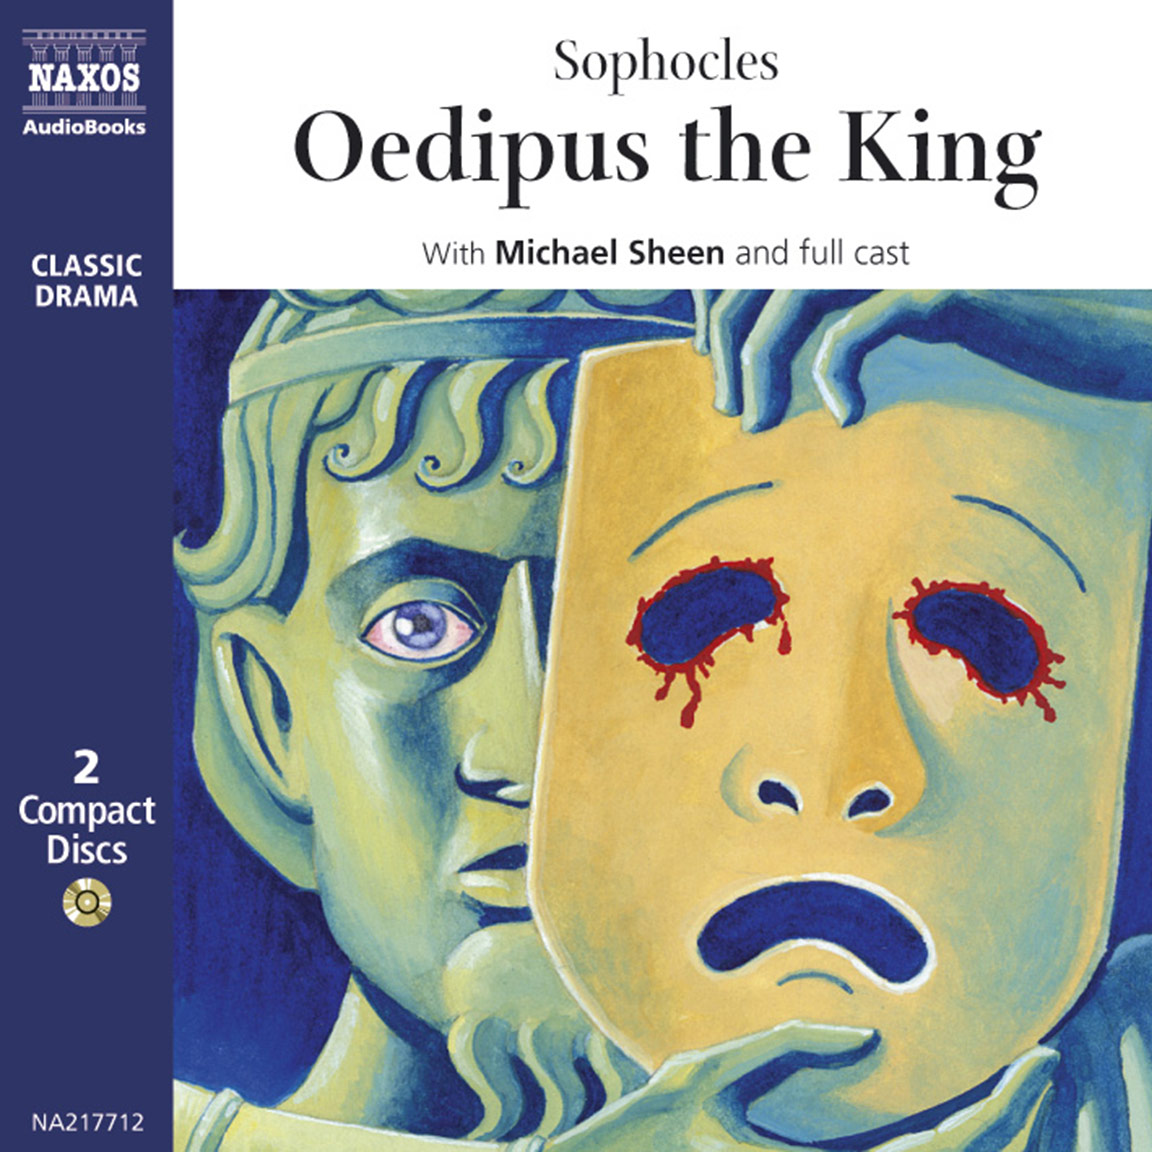 an analysis of the play oedipus the king by sophocles